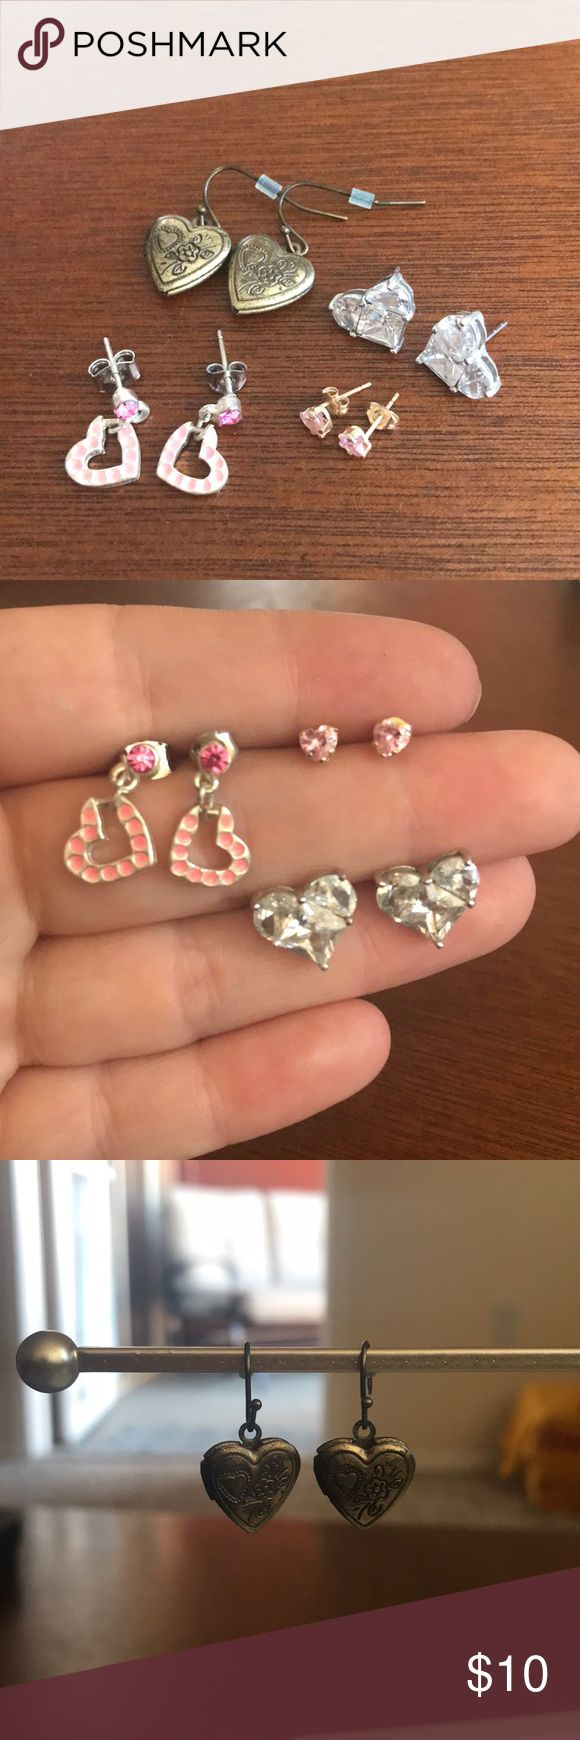 4 pairs of heart shaped earrings 4 pairs of adorable heart shaped earrings. 1. Small pink heart studs. 2. Large sparkle studs. 3. Pink studs with dangle hearts. 4. Detailed heart locket dangle earrings. Jewelry Earrings